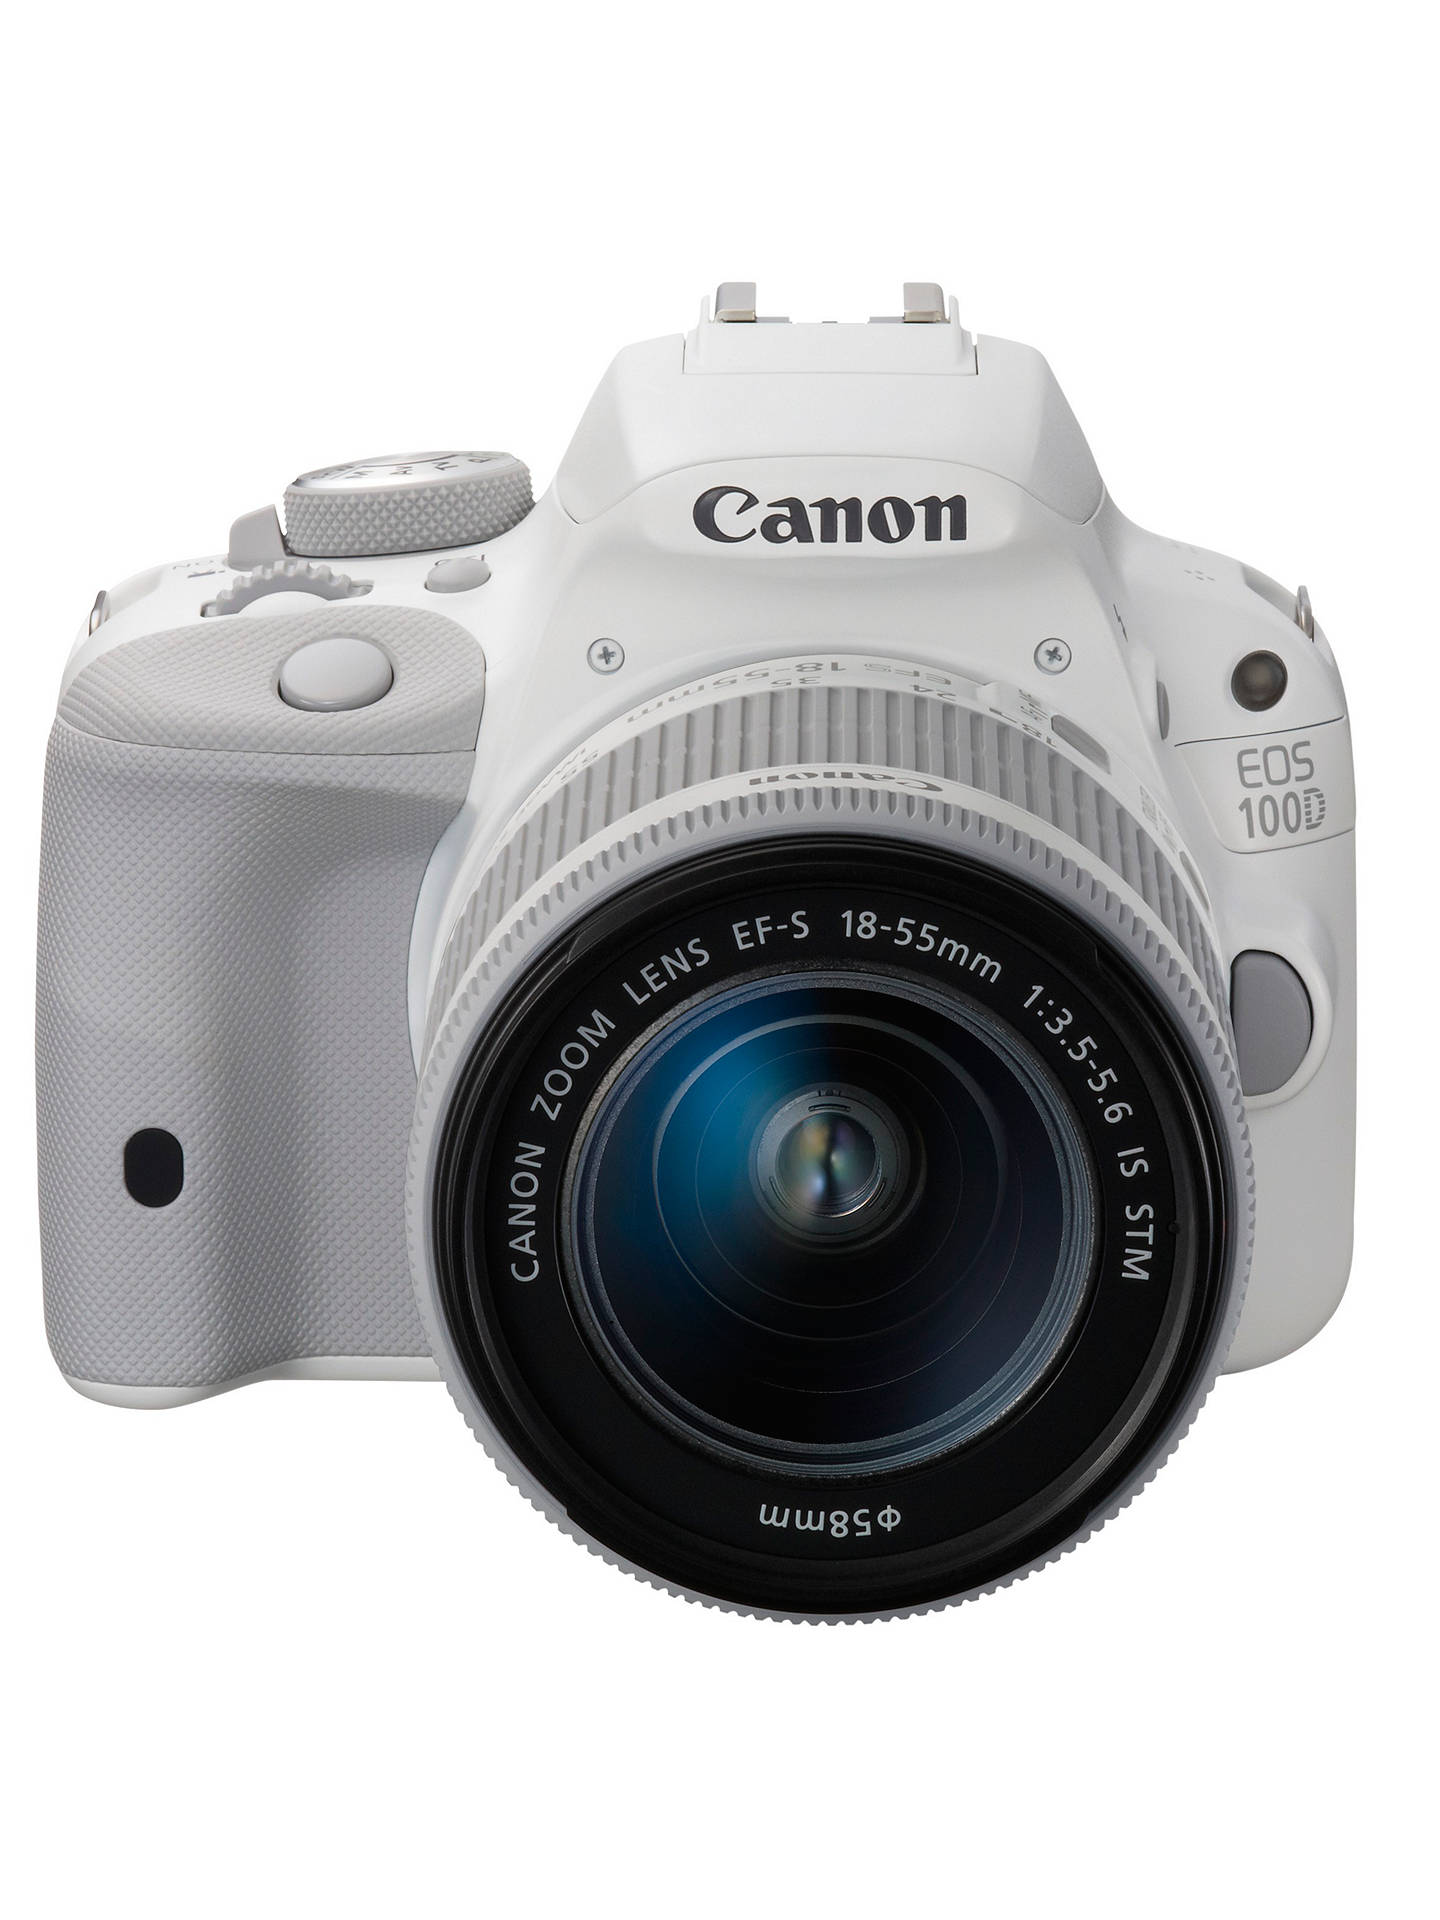 Canon Eos 100d Digital Slr Camera With 18 55mm Is Stm Lens Hd 1080p Kit 55 100 D Buycanon